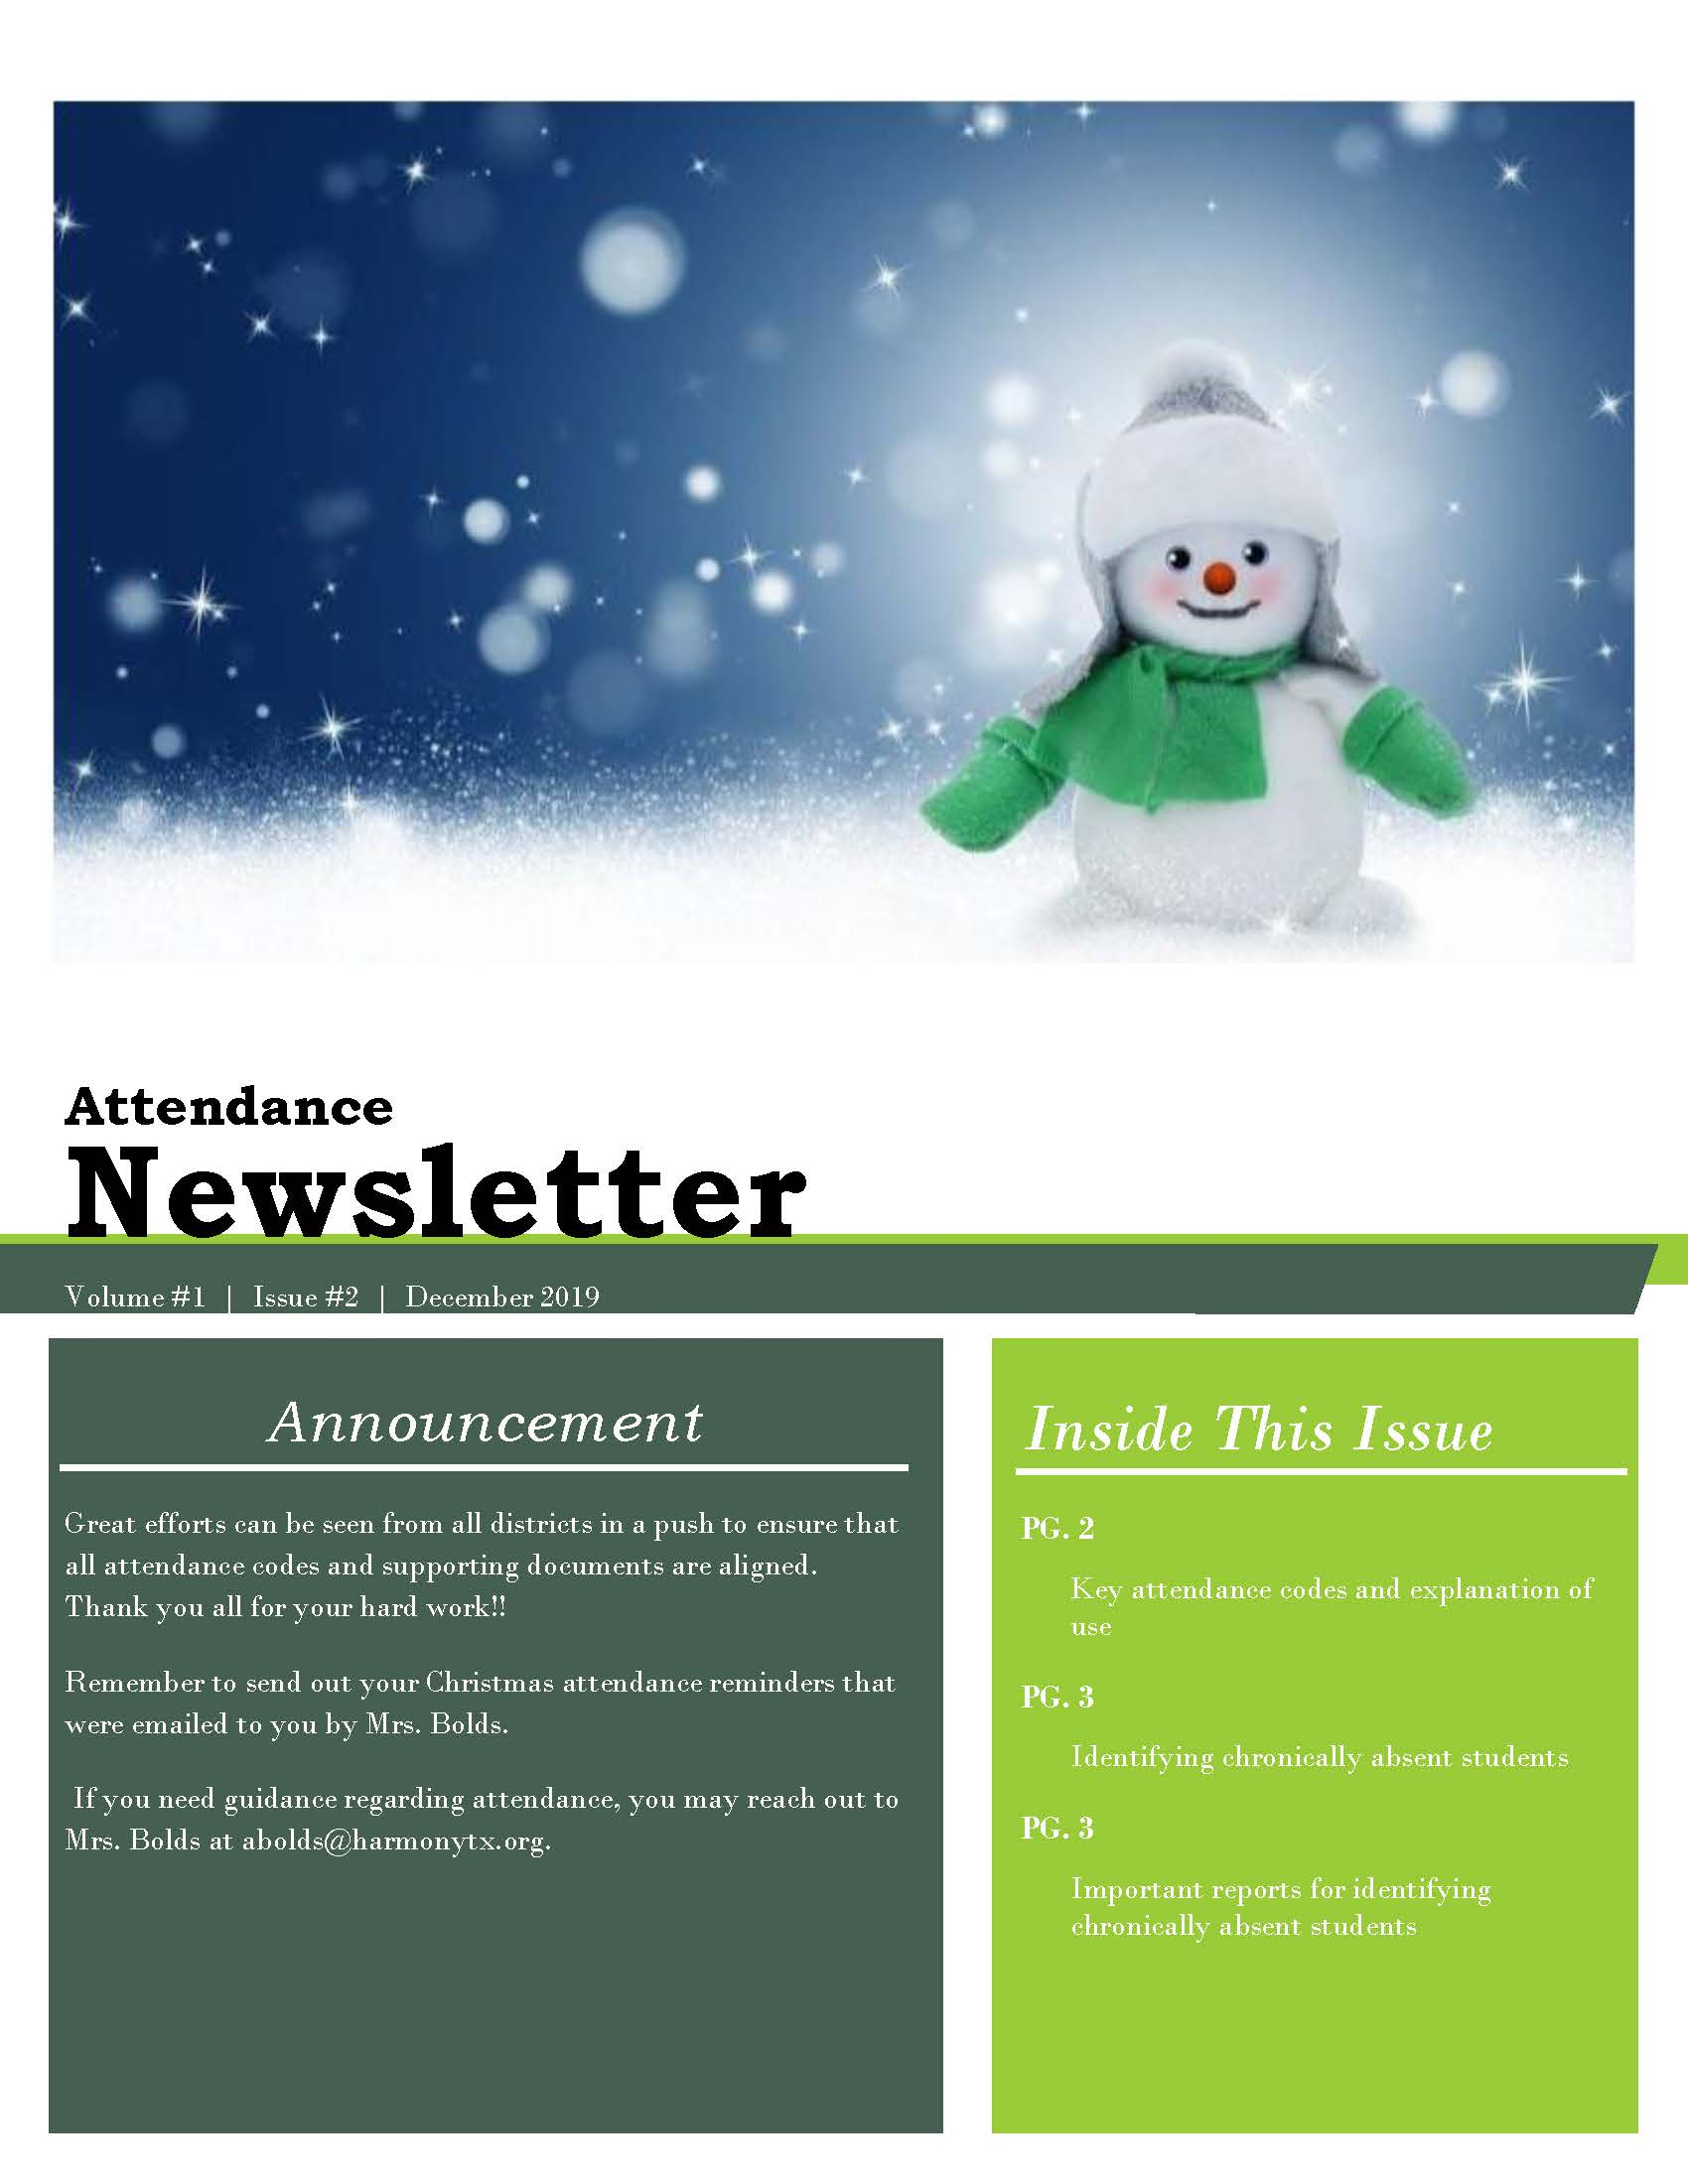 An image of page 1 of the Attendance Newsletter for December 2019